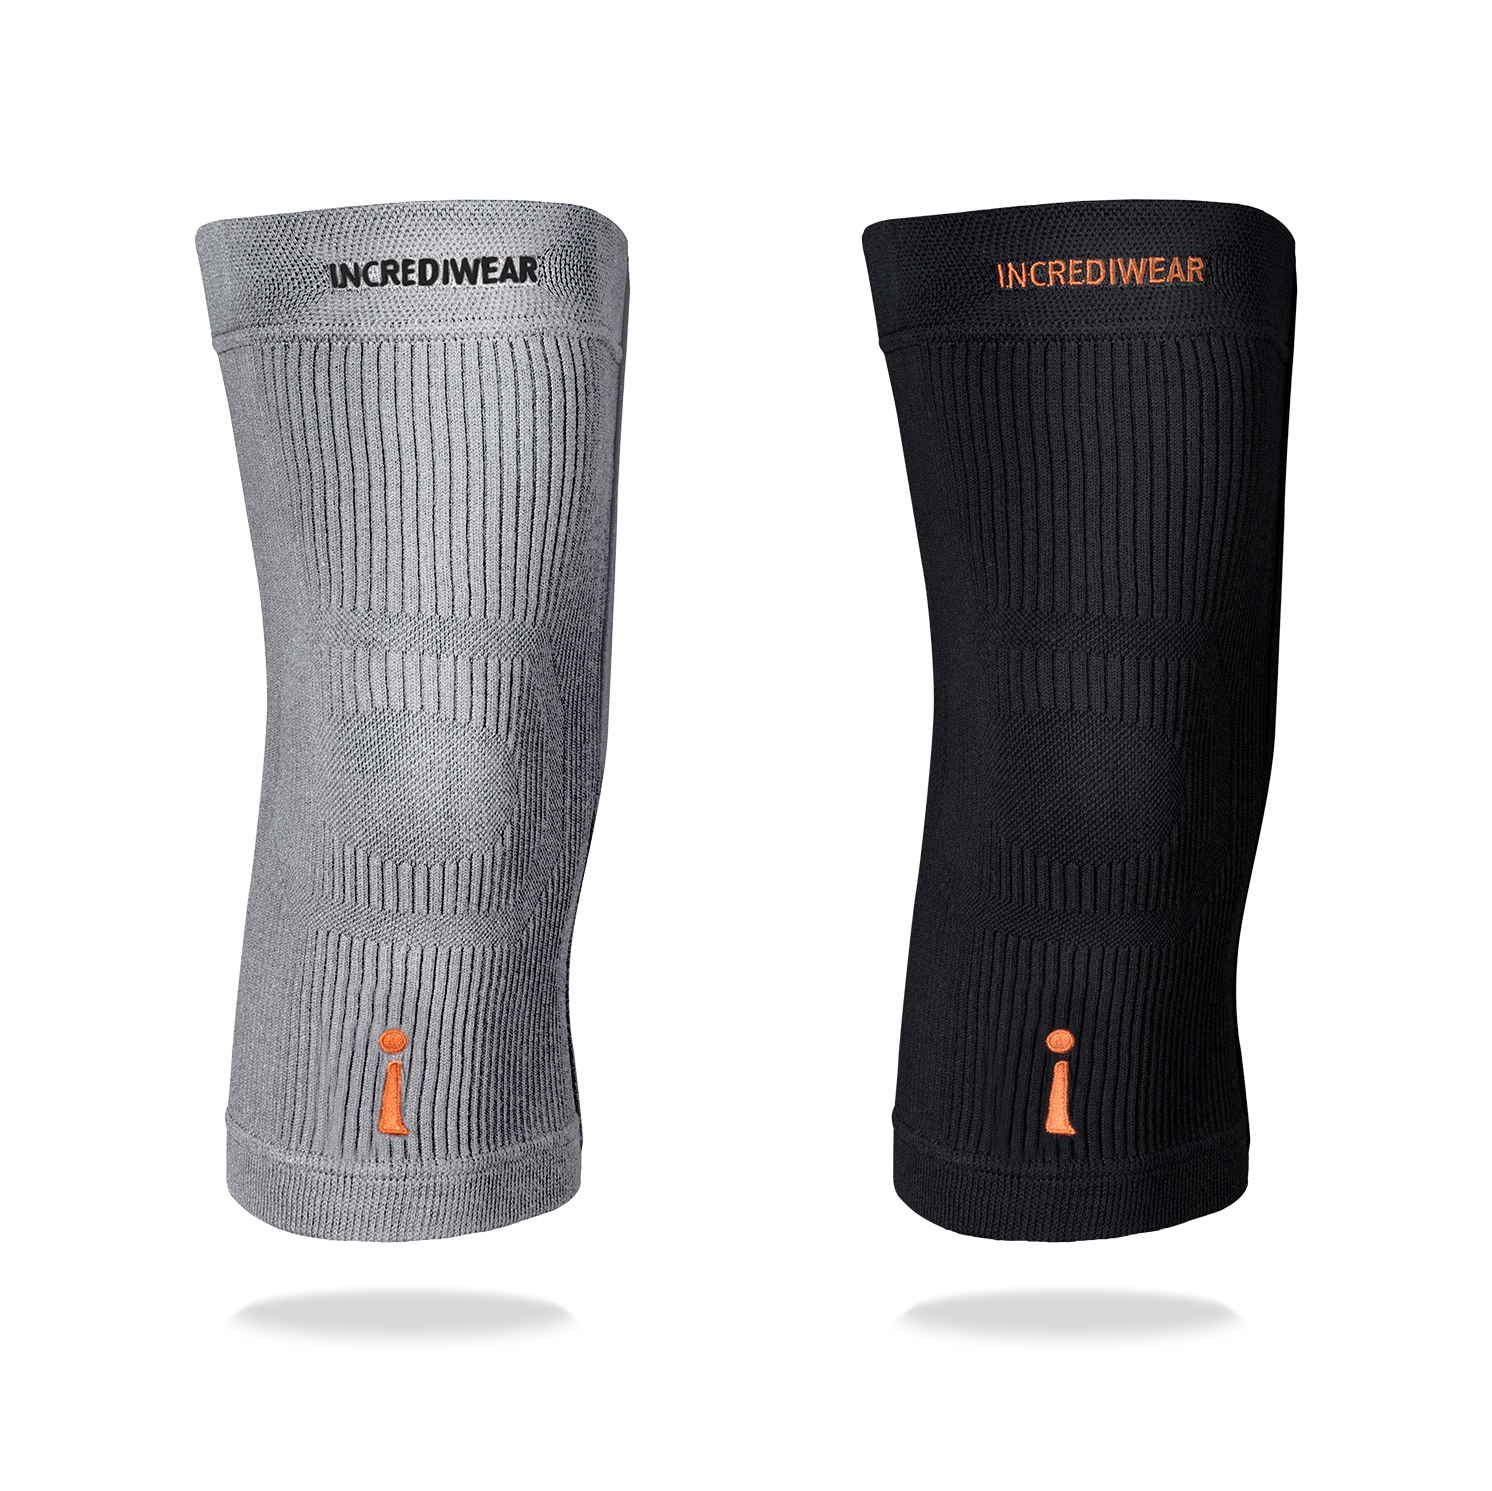 Incrediwear Knee Sleeve - Accelerates Recovery & Helps Relieve Pain